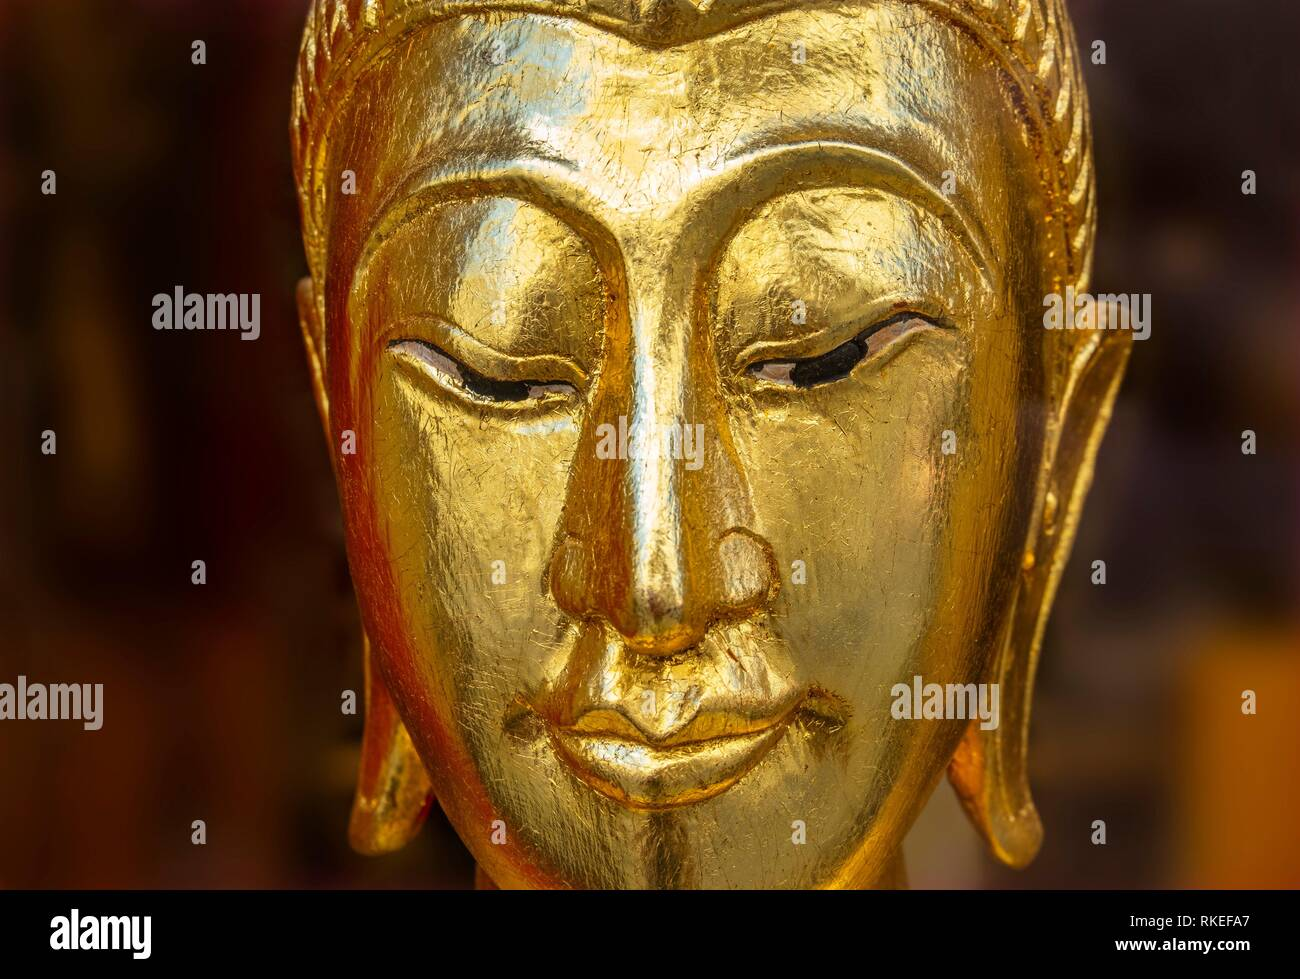 Buddha.In Buddhism, Buddha is a title for someone who has achieved enlightenment, nirvana and Buddhahood, and has fully comprehended the Four Noble - Stock Image